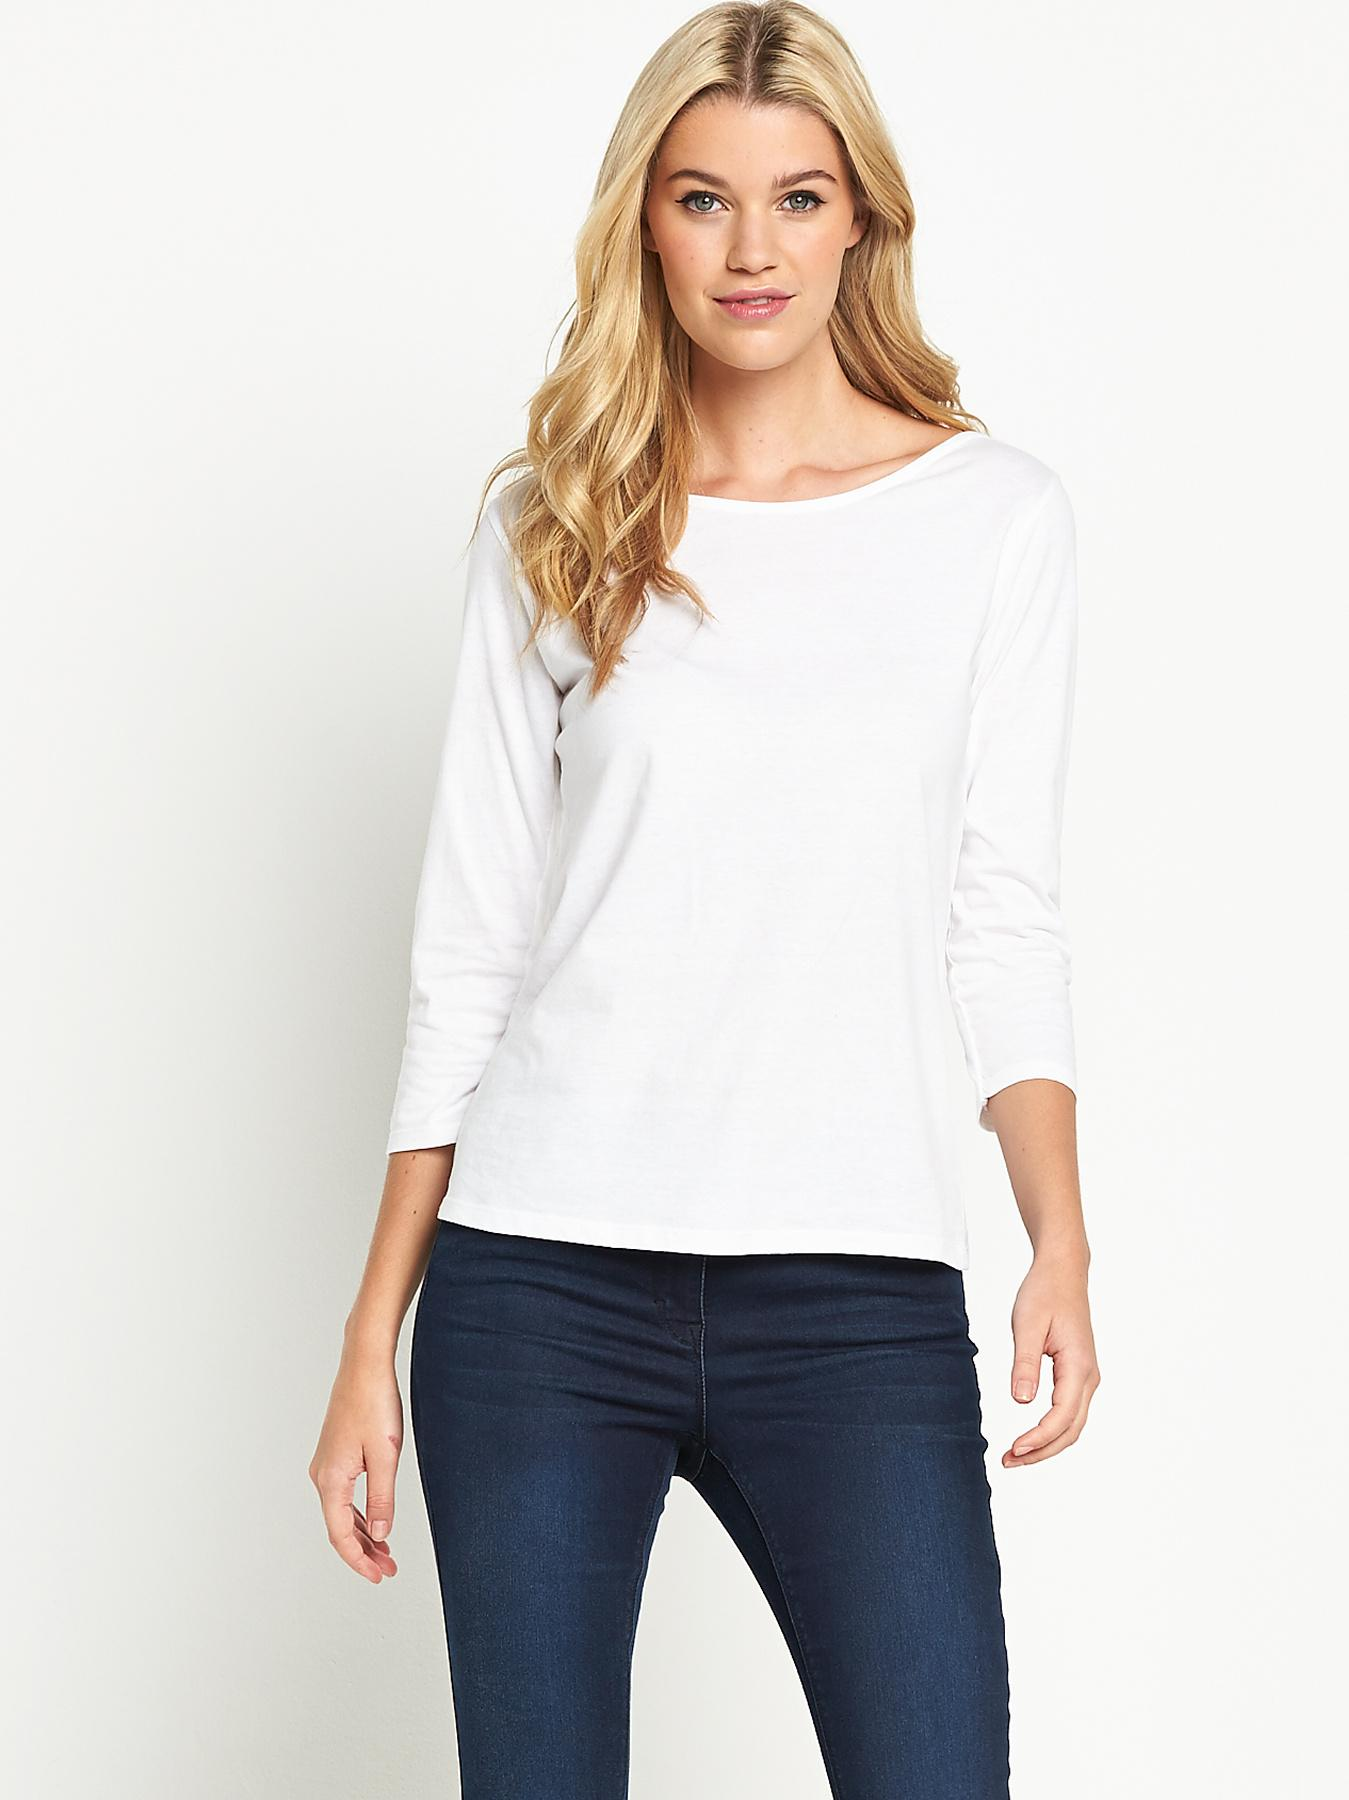 Three-quarter Sleeve Top, White,Black,Grey at Littlewoods